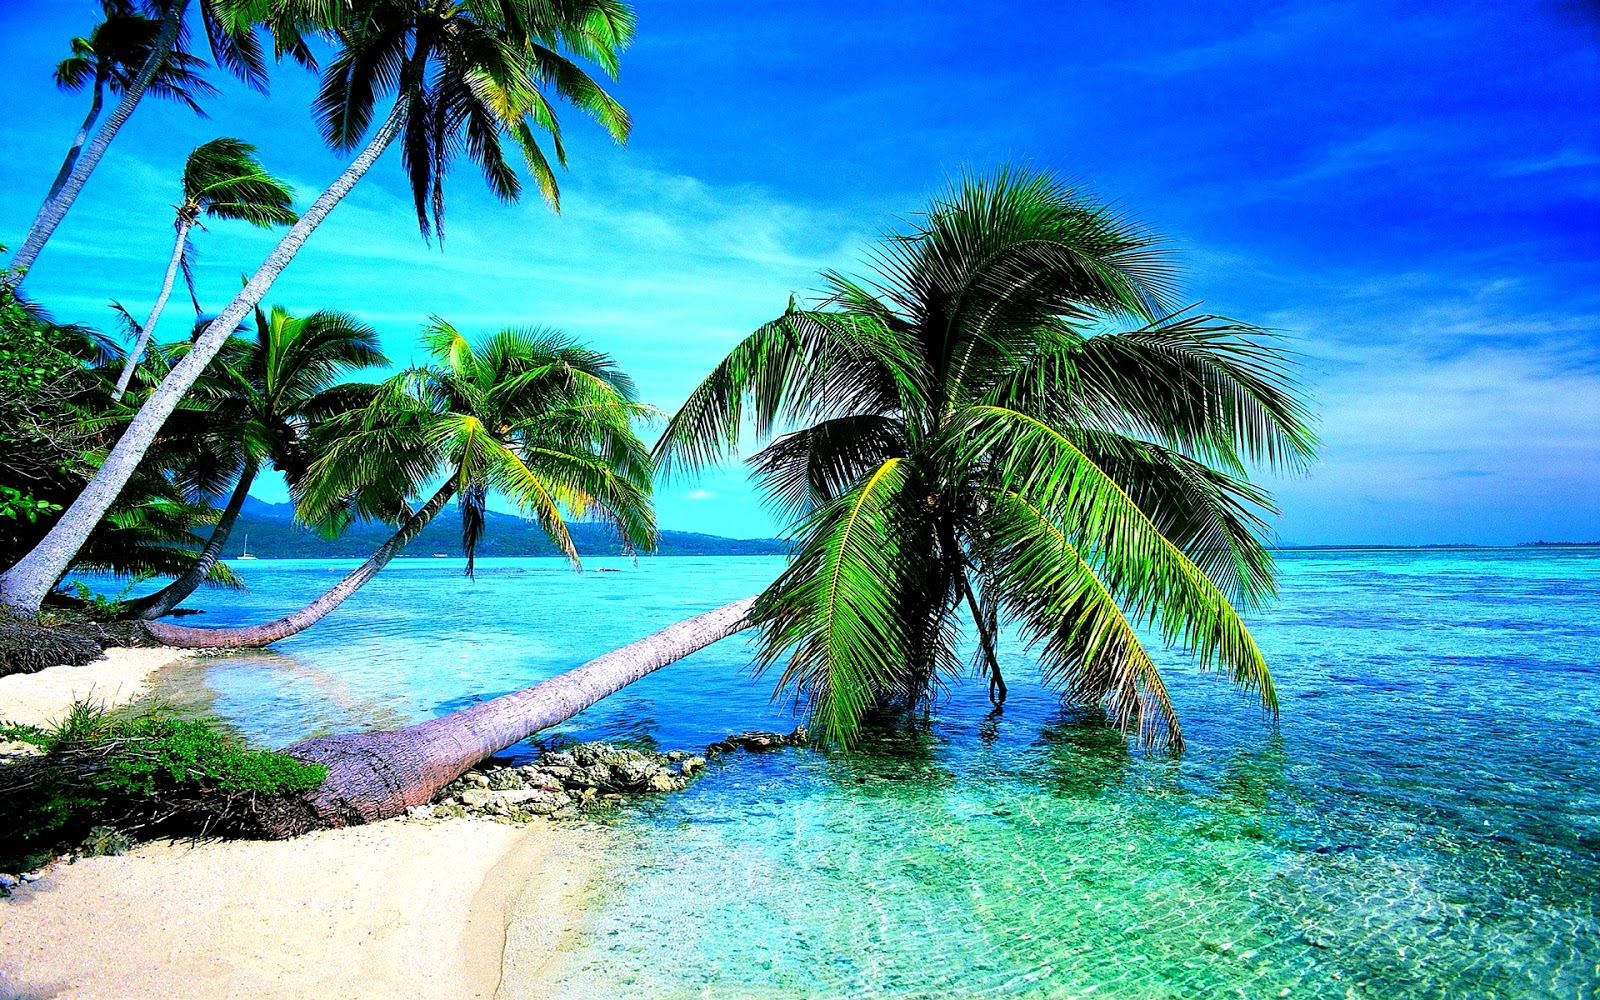 Hd Tropical Island Beach Paradise Wallpapers And Backgrounds: Studio Backgrounds: Most Beautiful Beaches